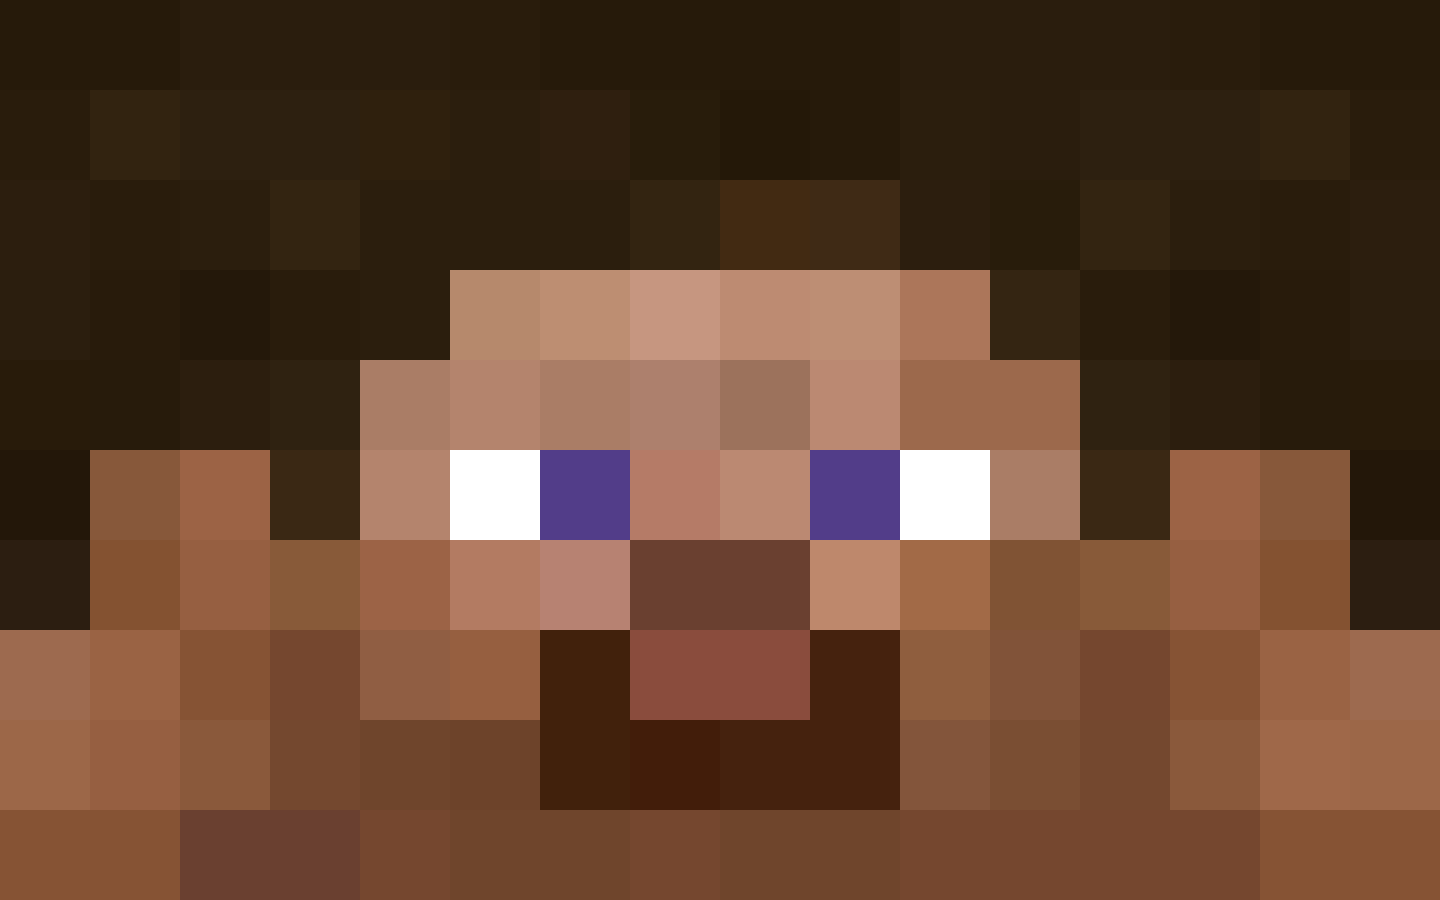 Minecraft Characters Faces Minecraft Faces Templates Google Search Minecraft